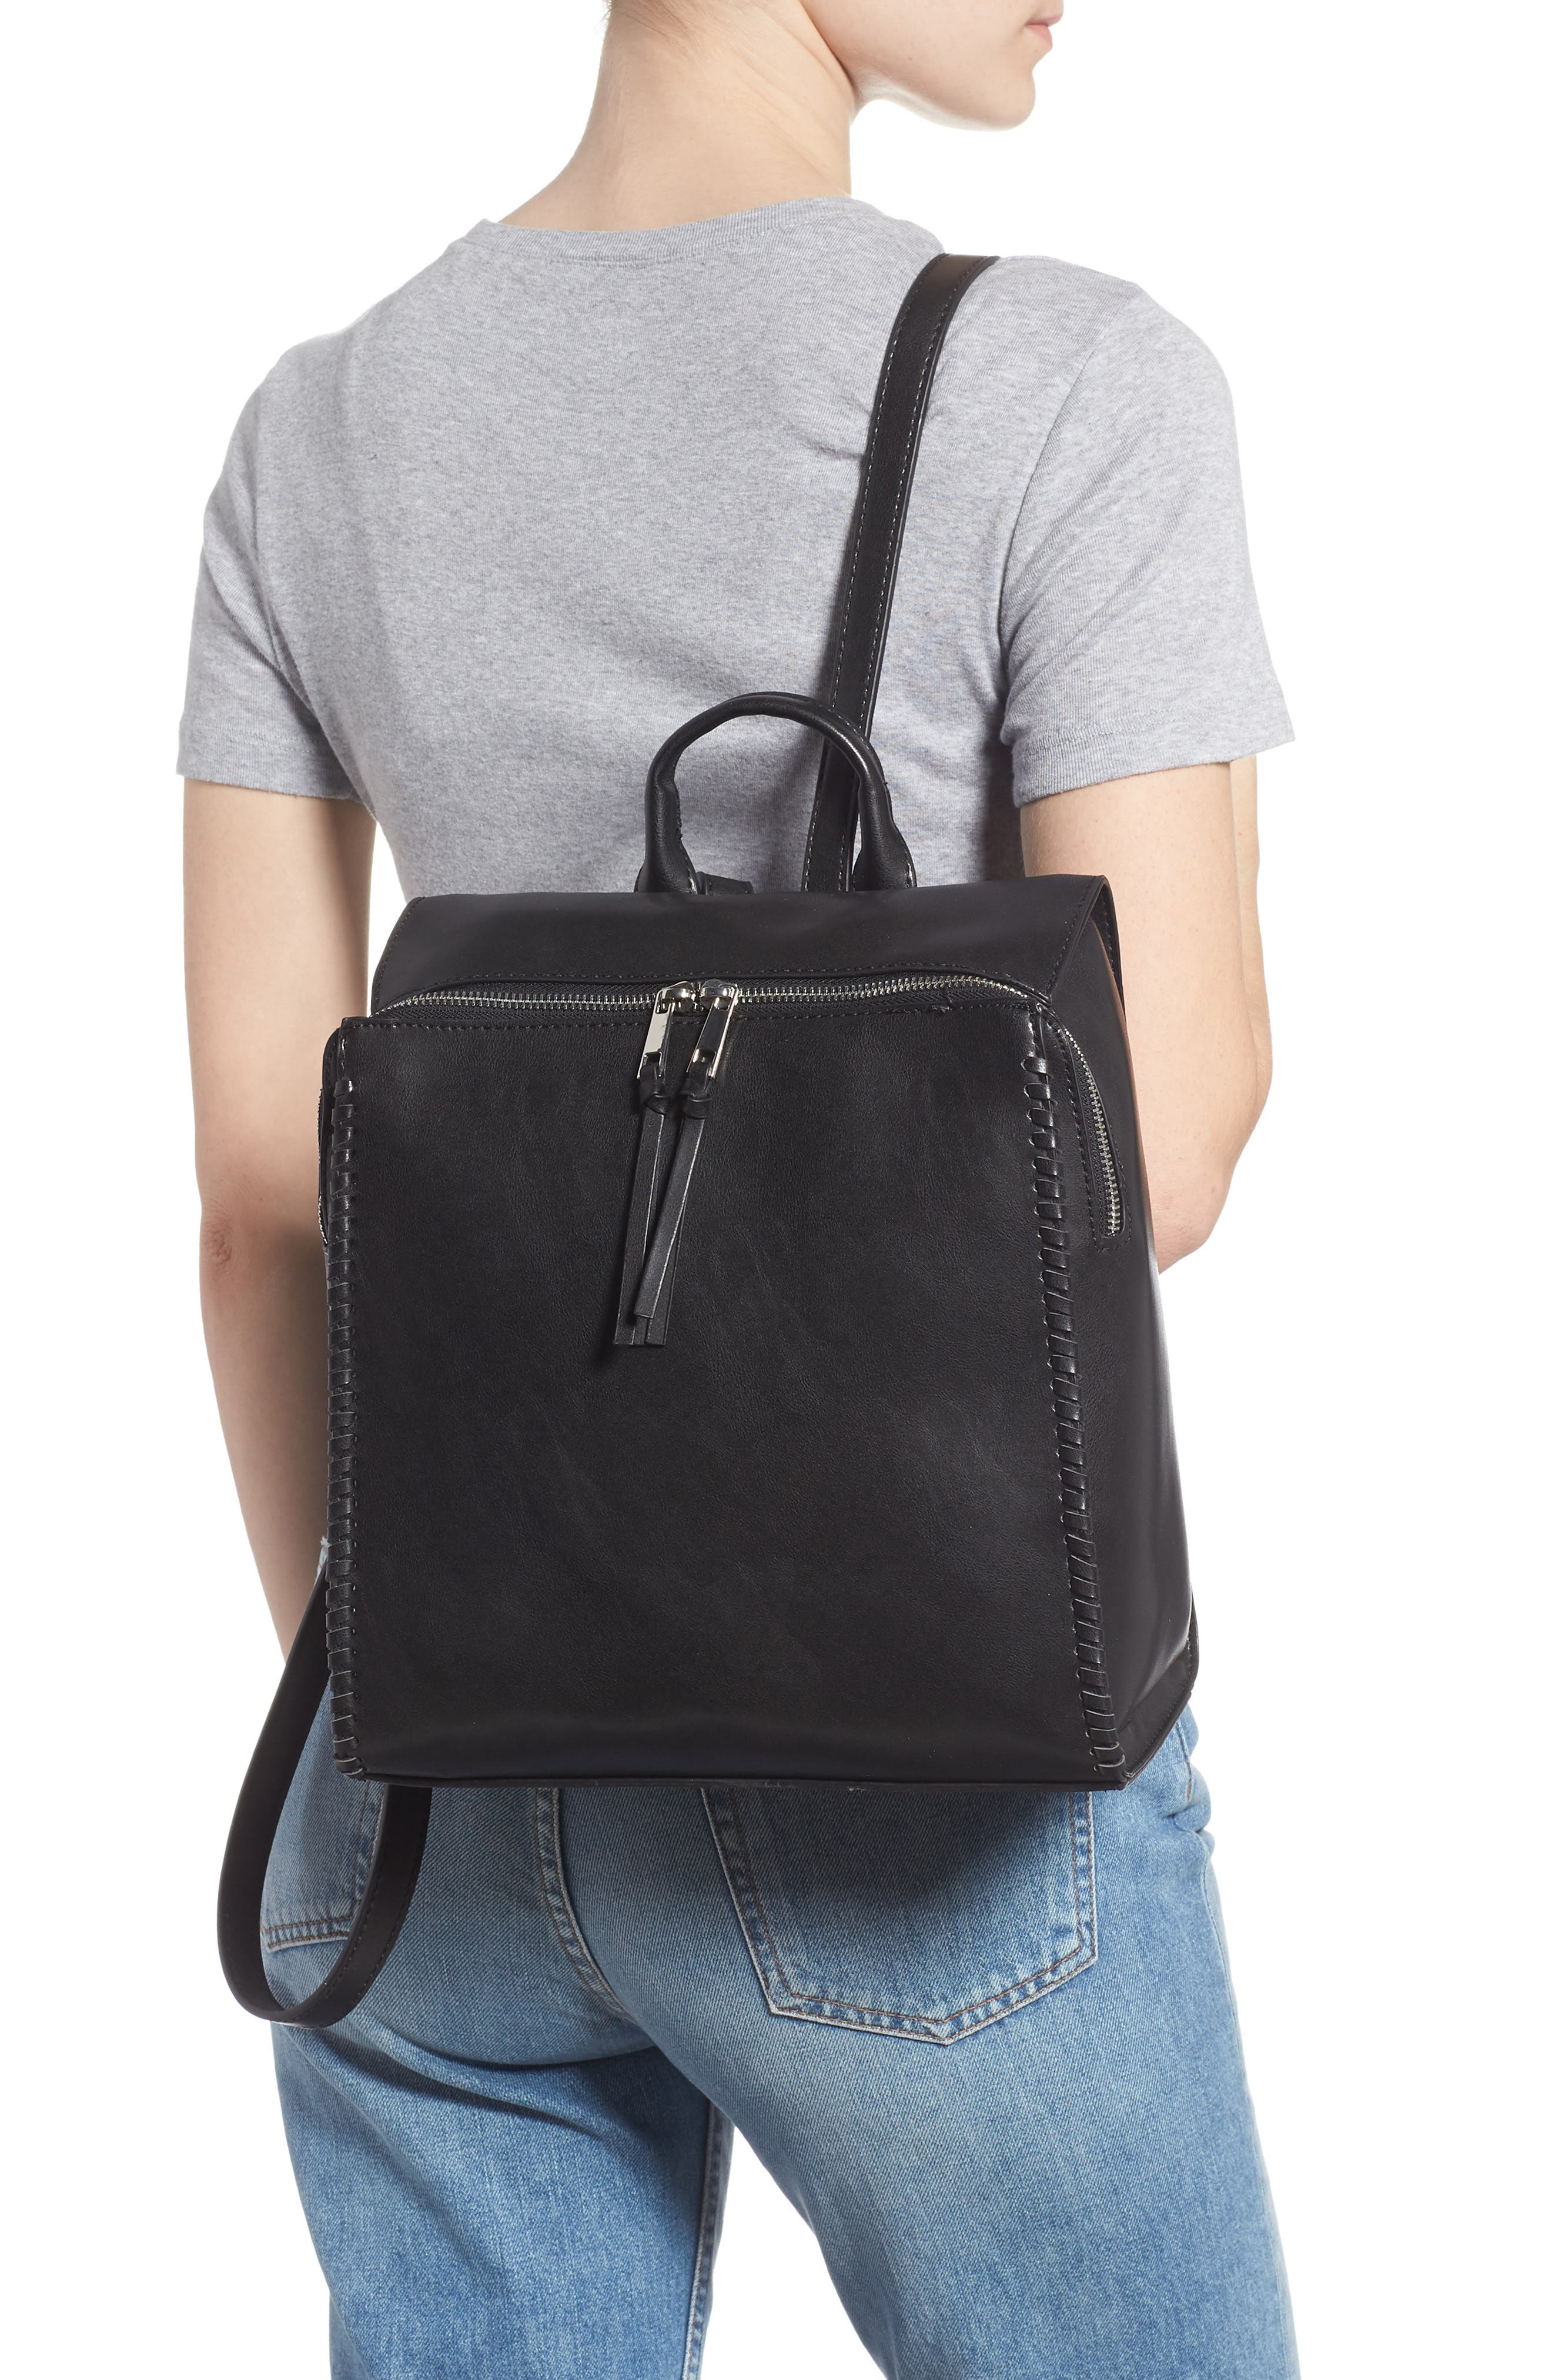 Whipstitch Faux Leather Square Backpack,                             Alternate thumbnail 2, color,                             001